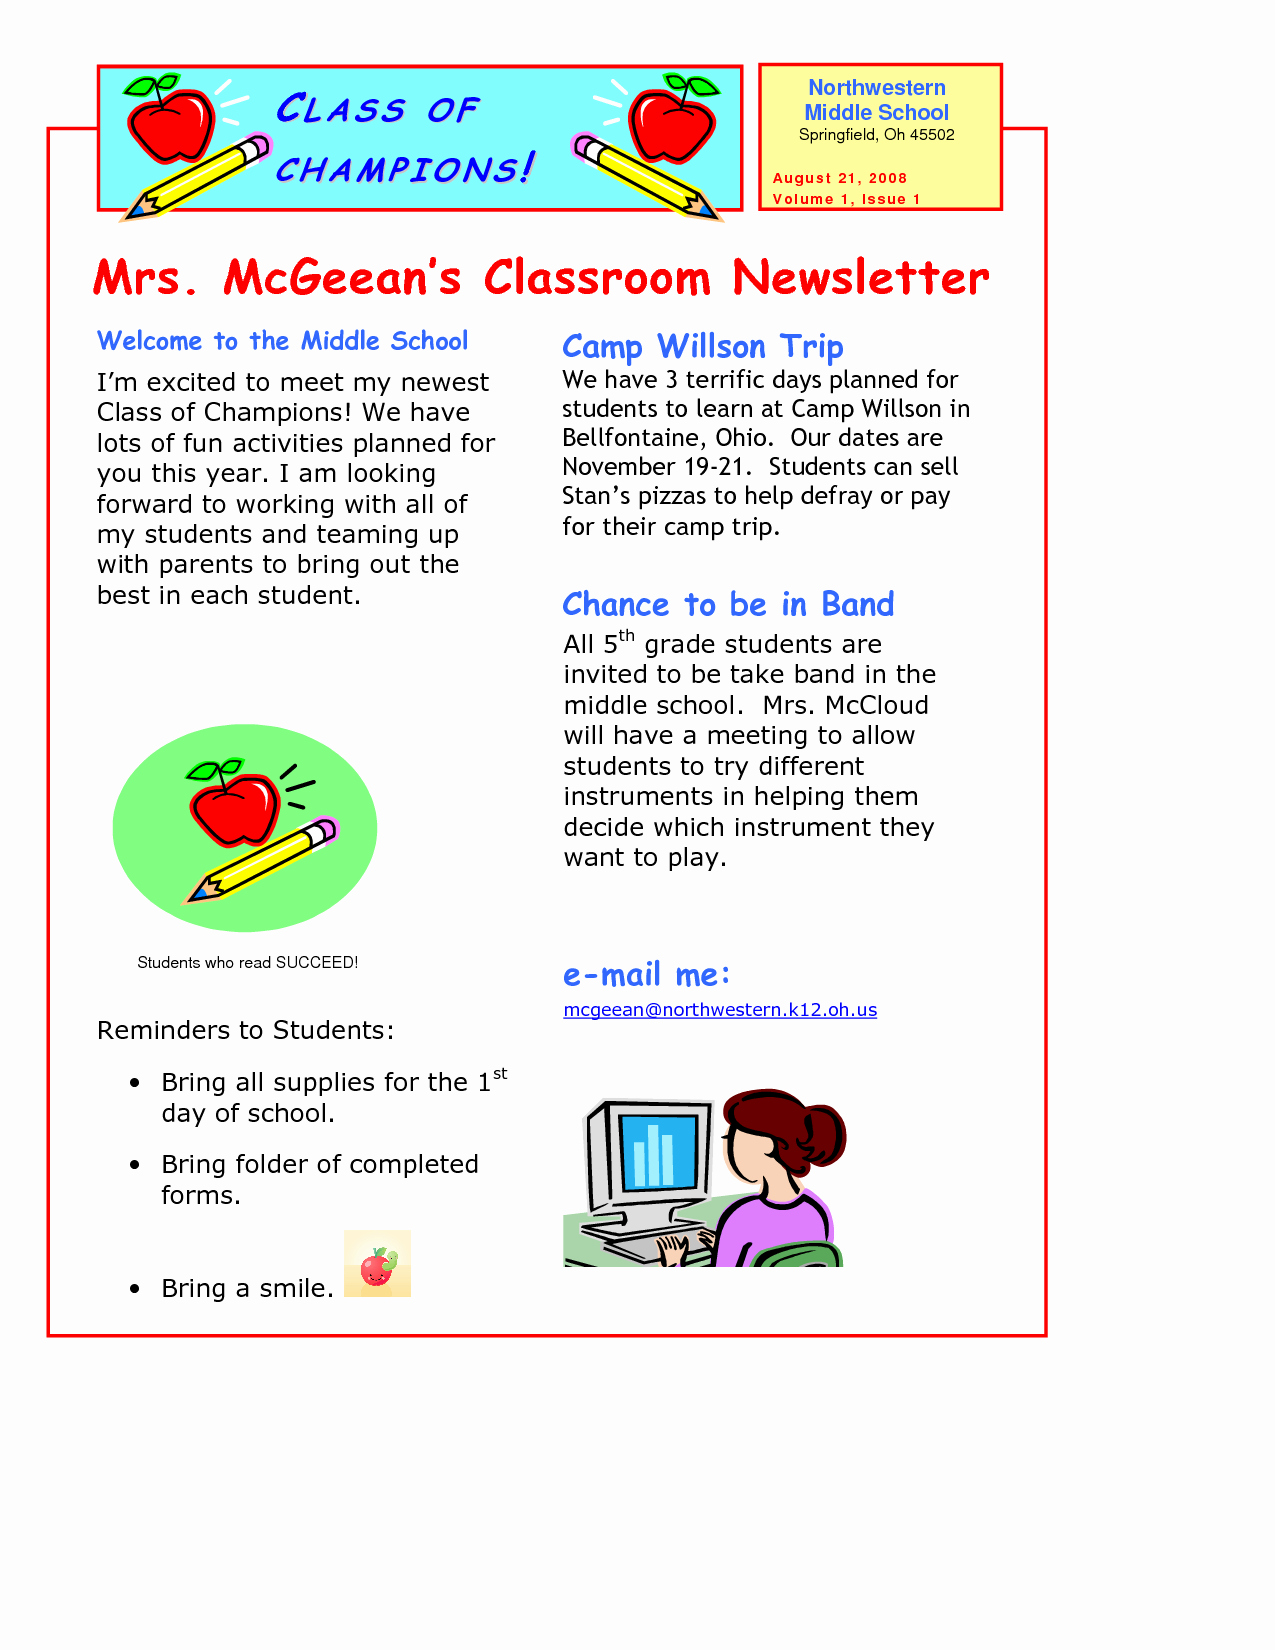 Elementary School Newsletter Template Inspirational Classroom Newsletter Template